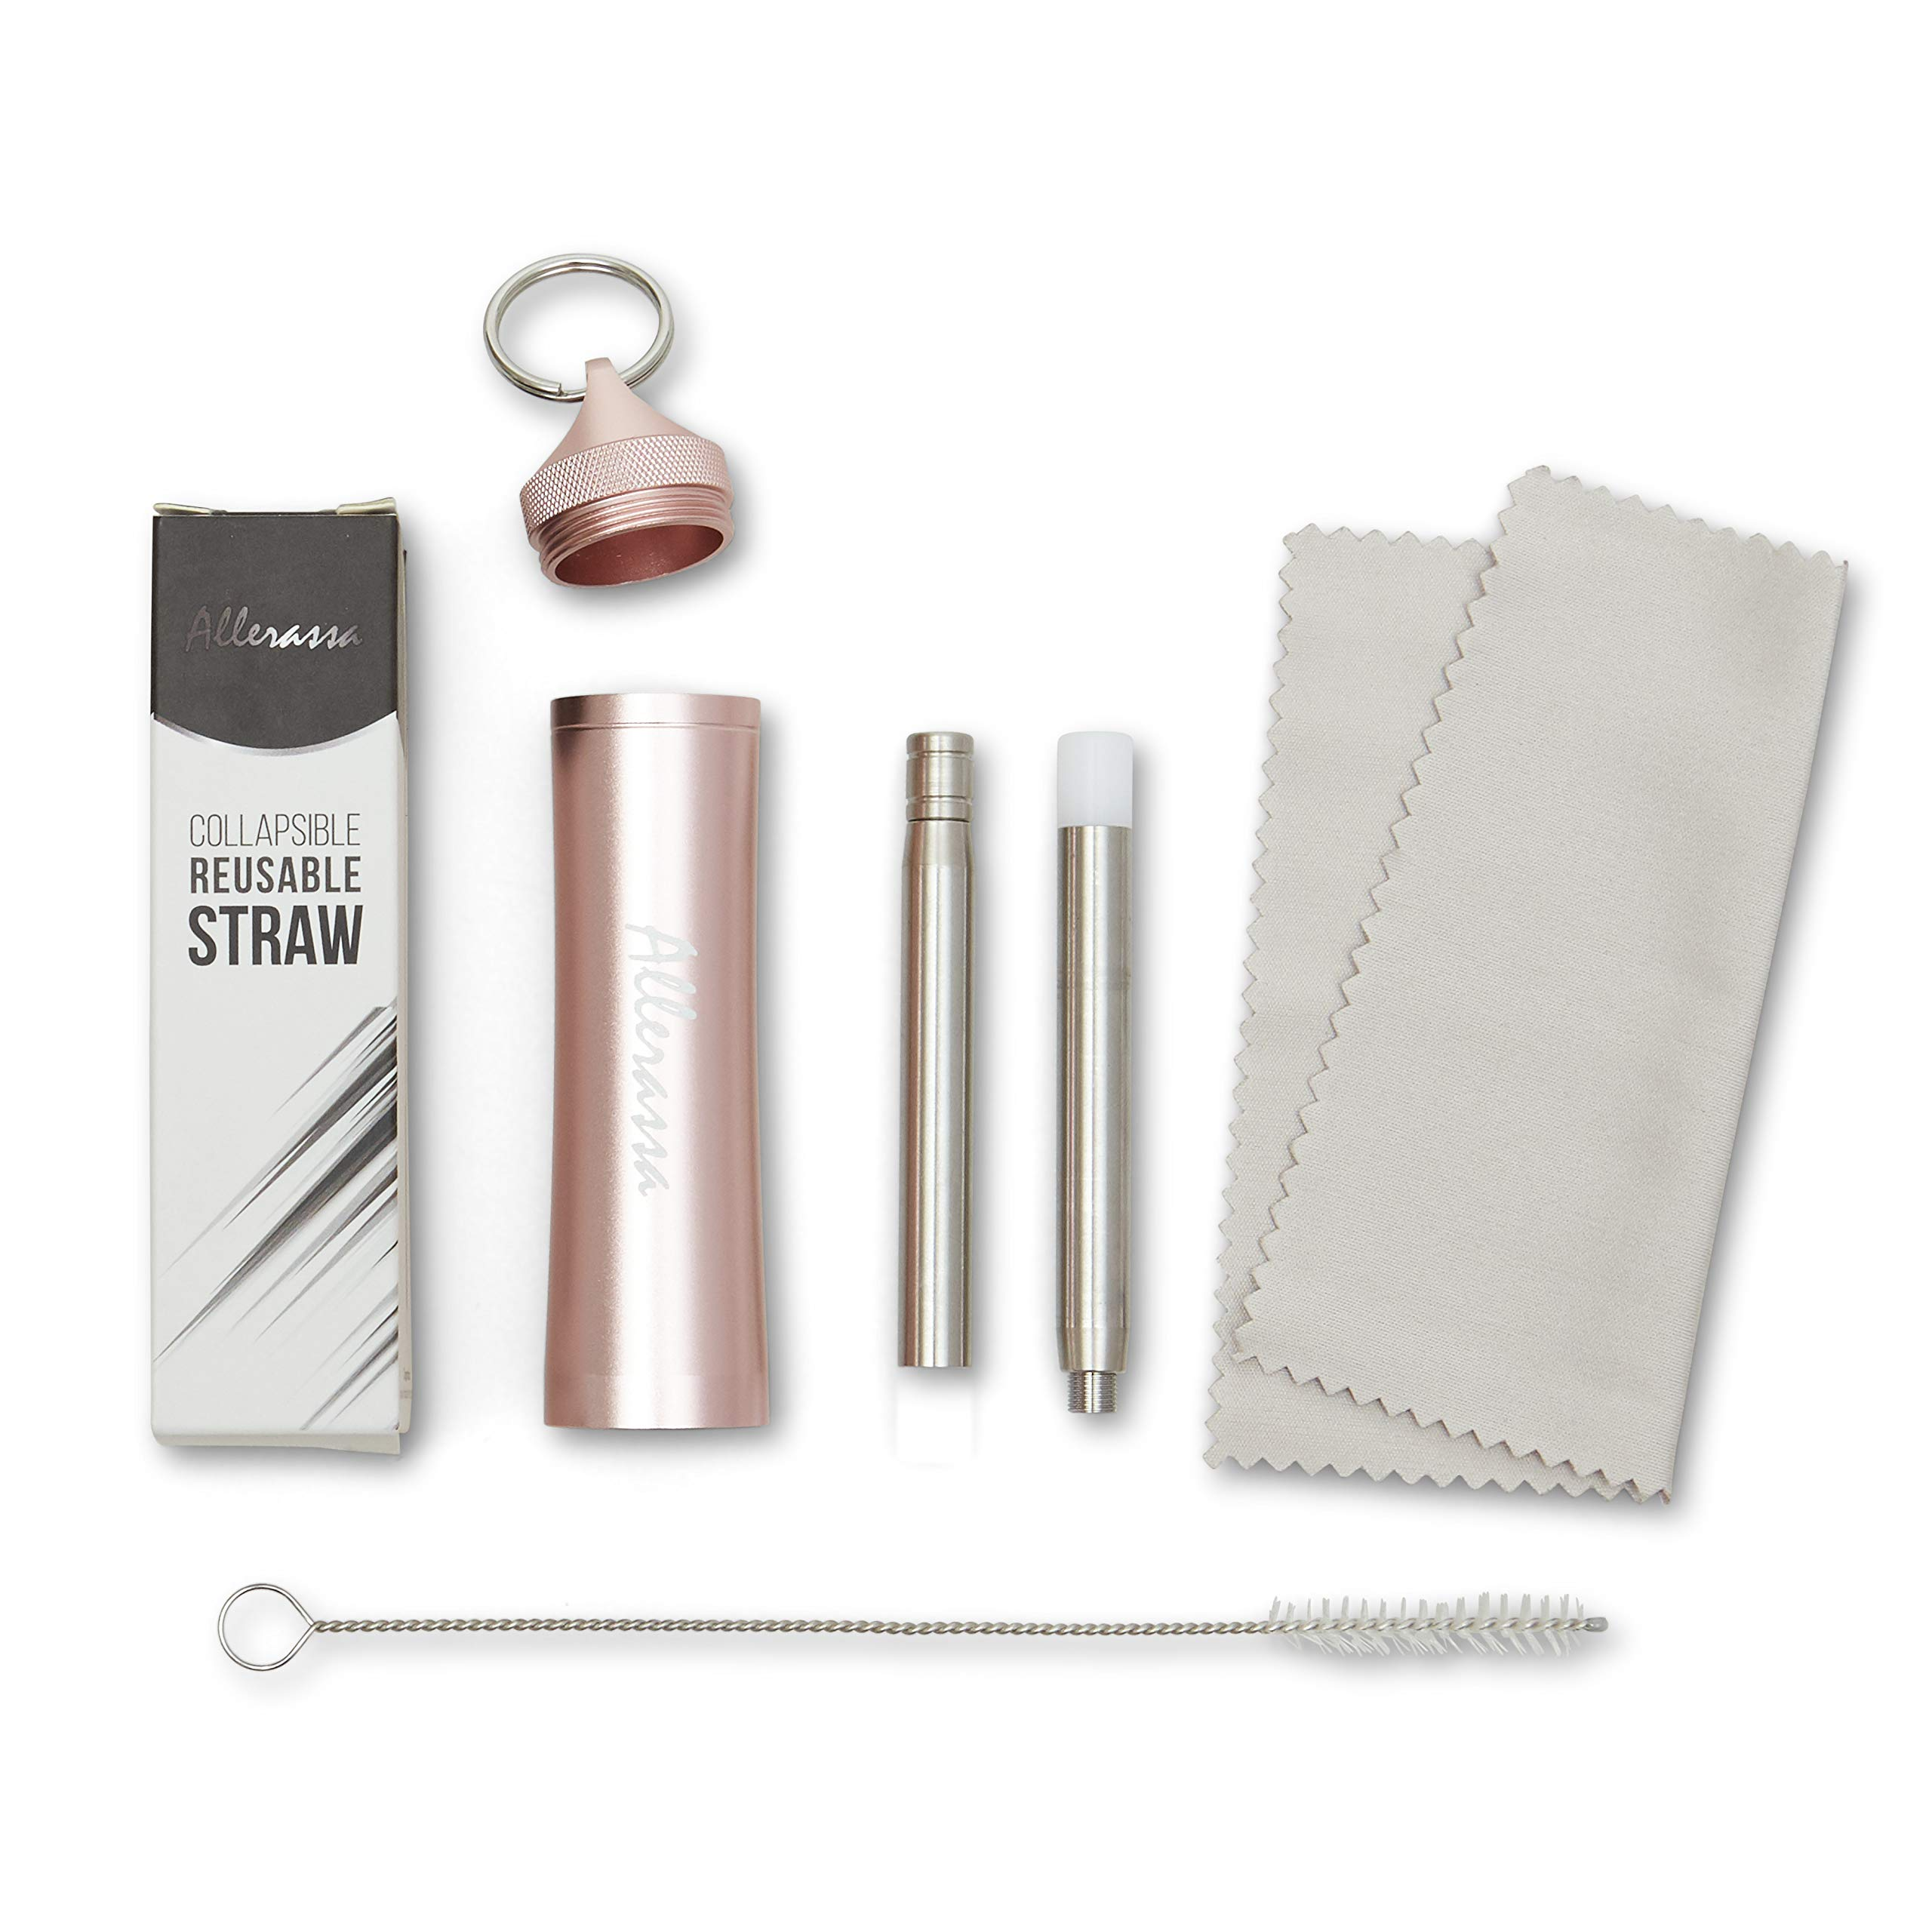 Collapsible Stainless Steel Straw with Travel Case (Rose Gold) by Alerassa